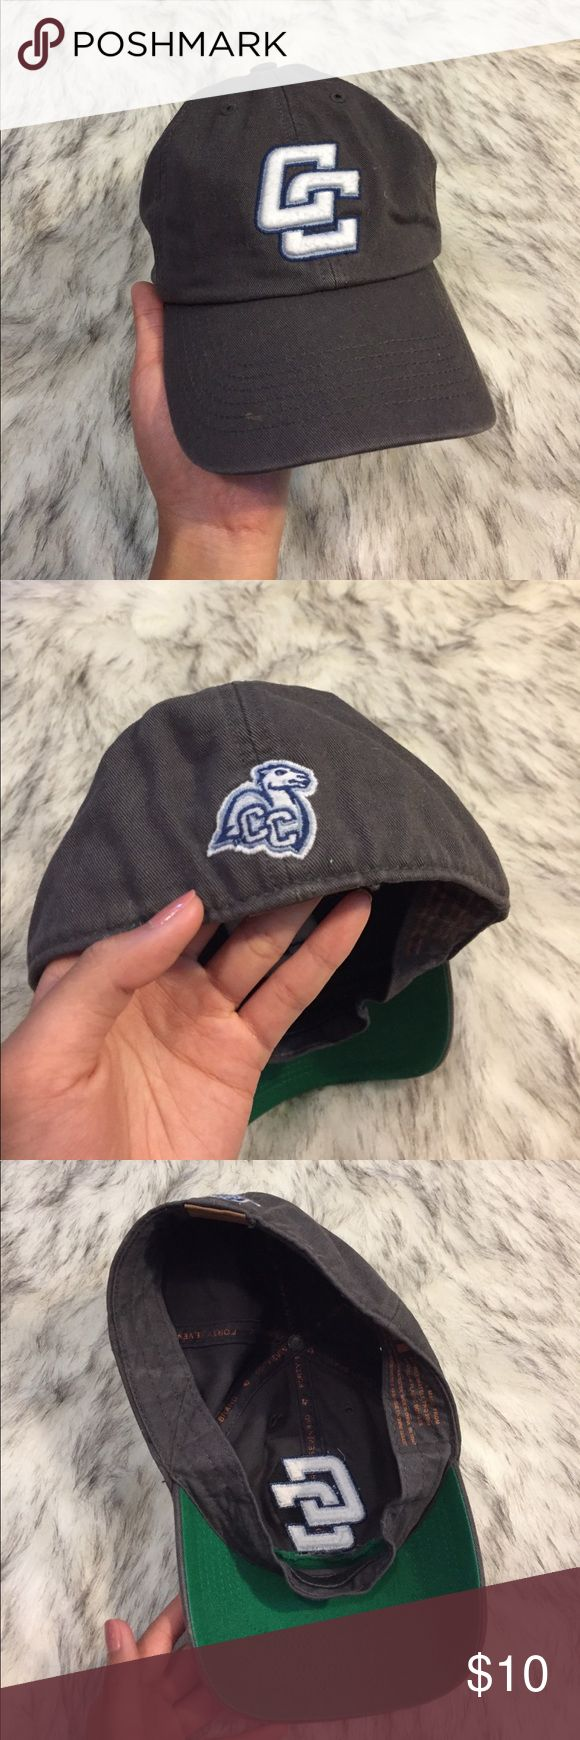 Connecticut College Hat Size L, made of recycled materials Brandy Melville Accessories Hats